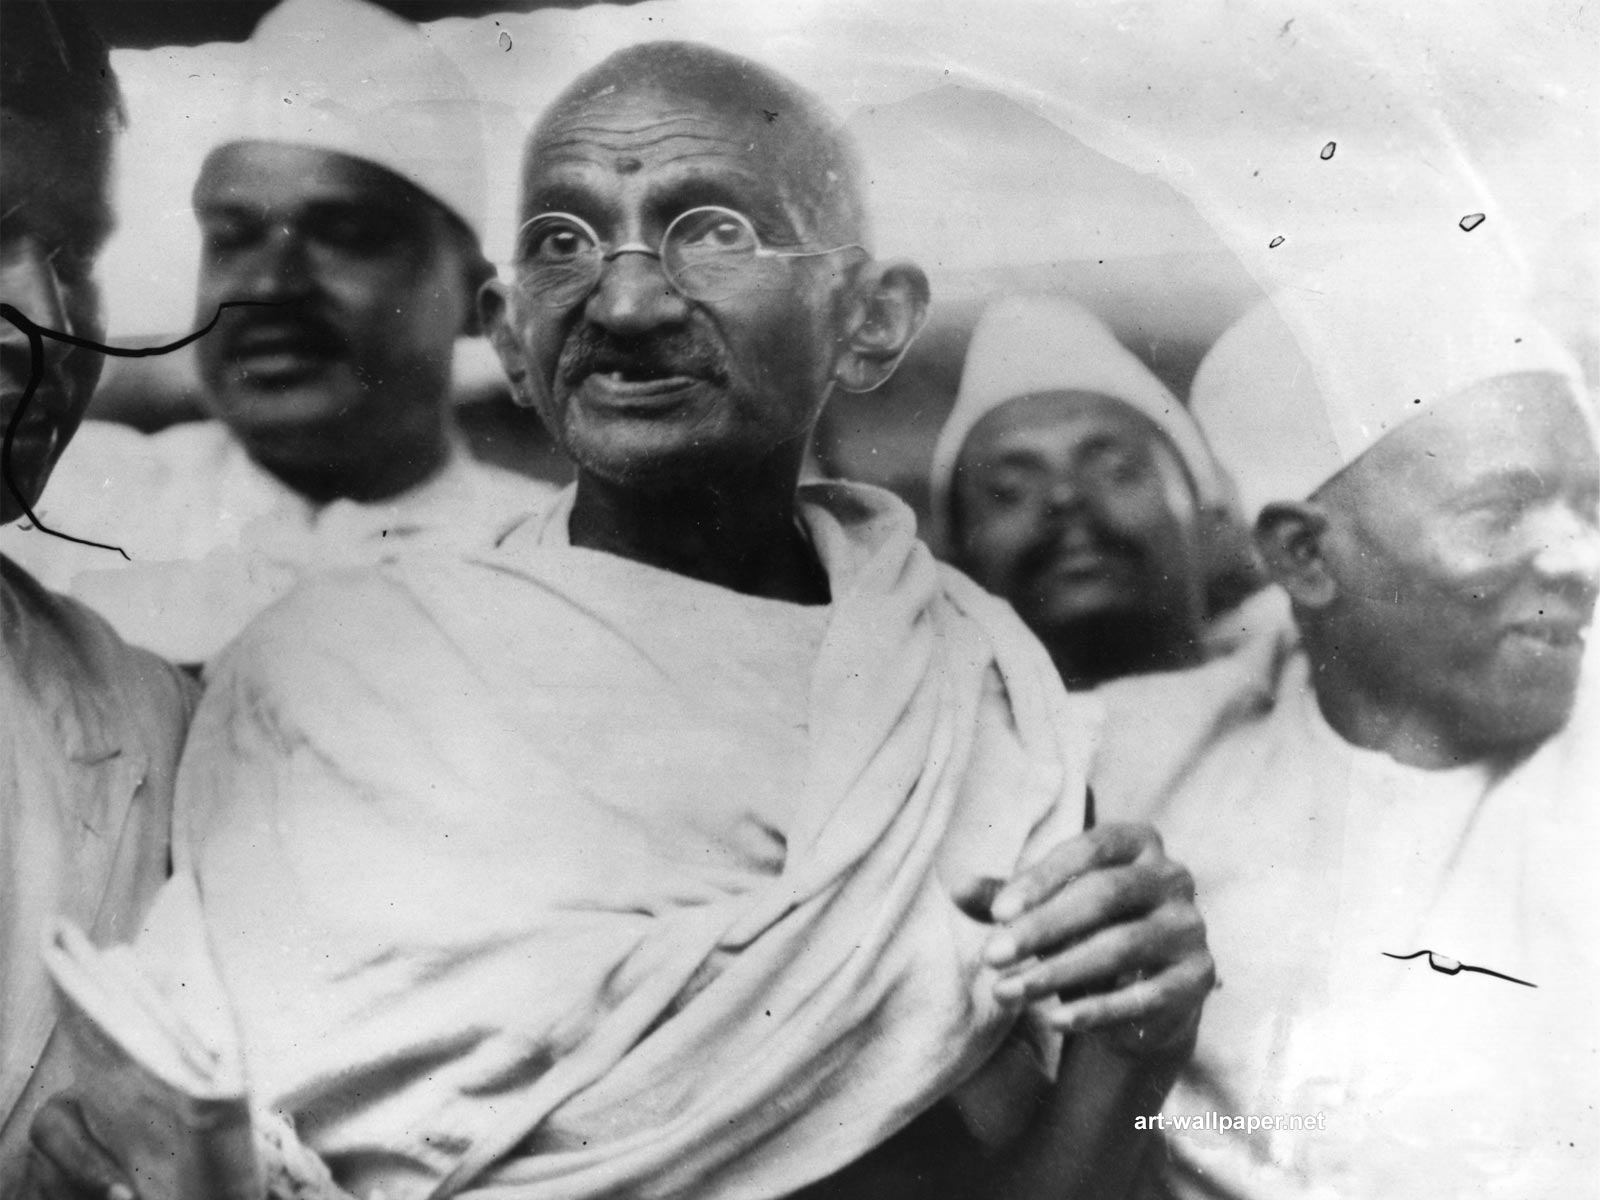 mahtma ghandi Mahatma gandhi was one of the most famous freedom fighters in the history of mankind he led india in its struggle for freedom against the british rule.